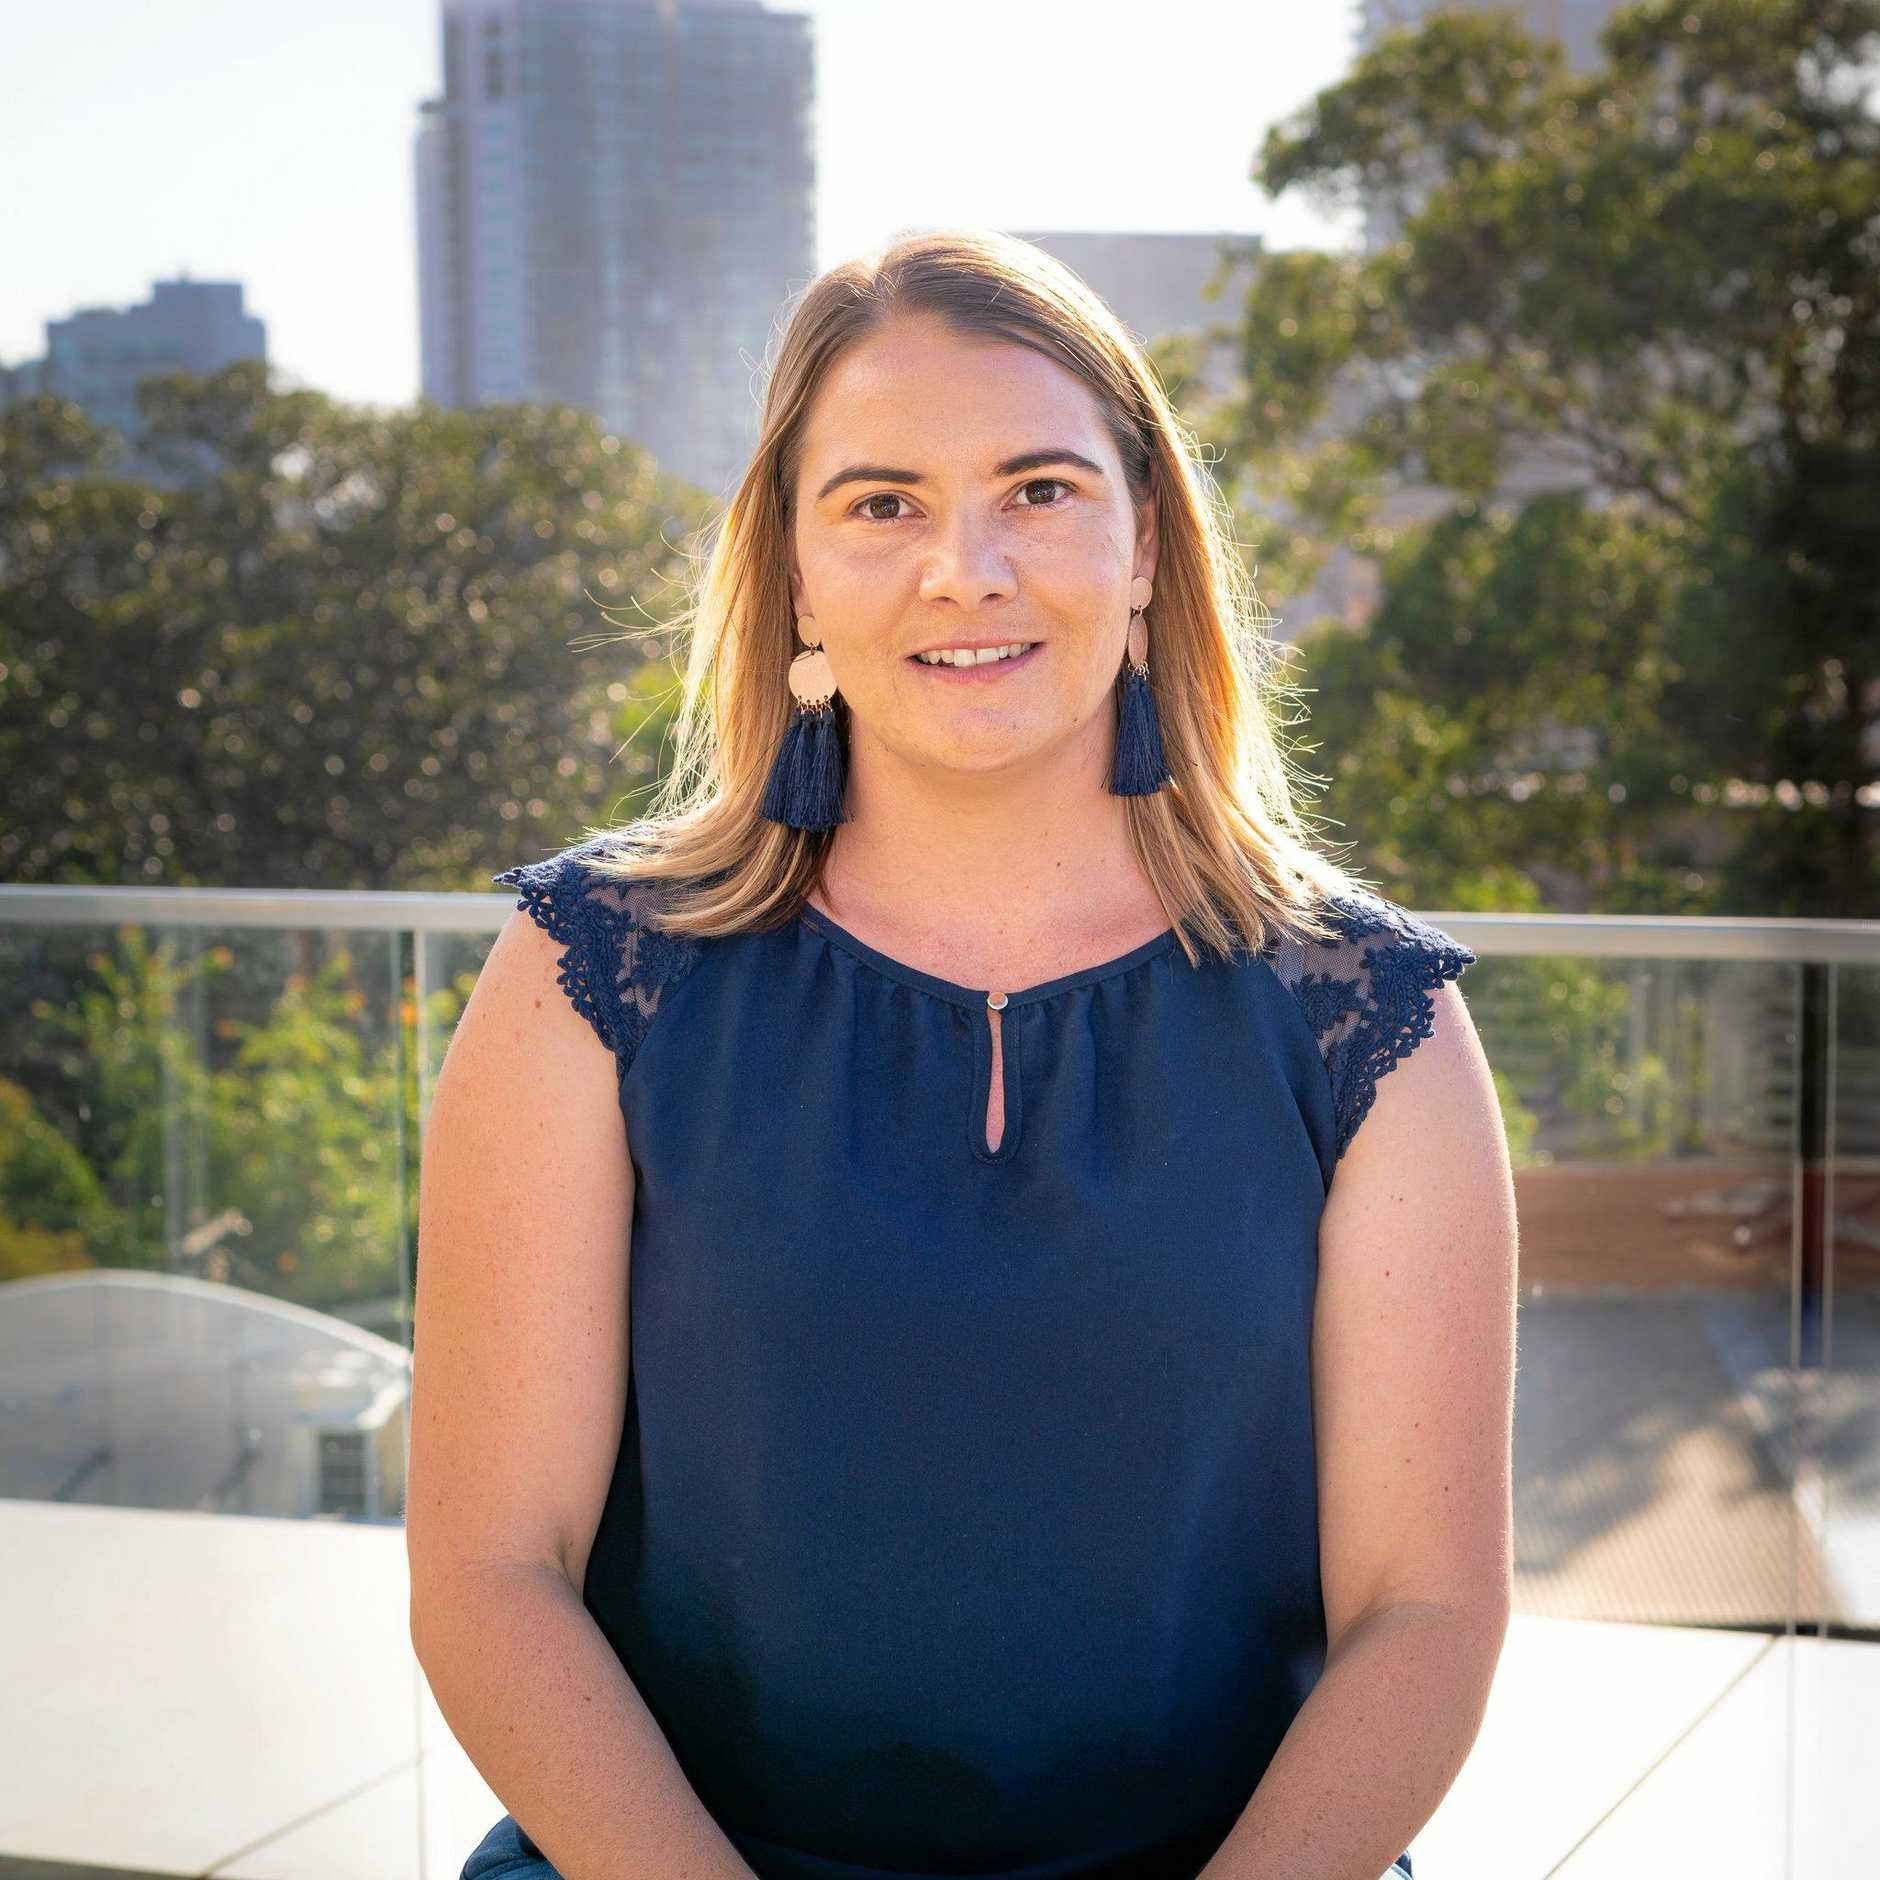 FOR OUR GIRLS: Lizzy Rickaby is working to make regional Australia a safer place for our women and girls.